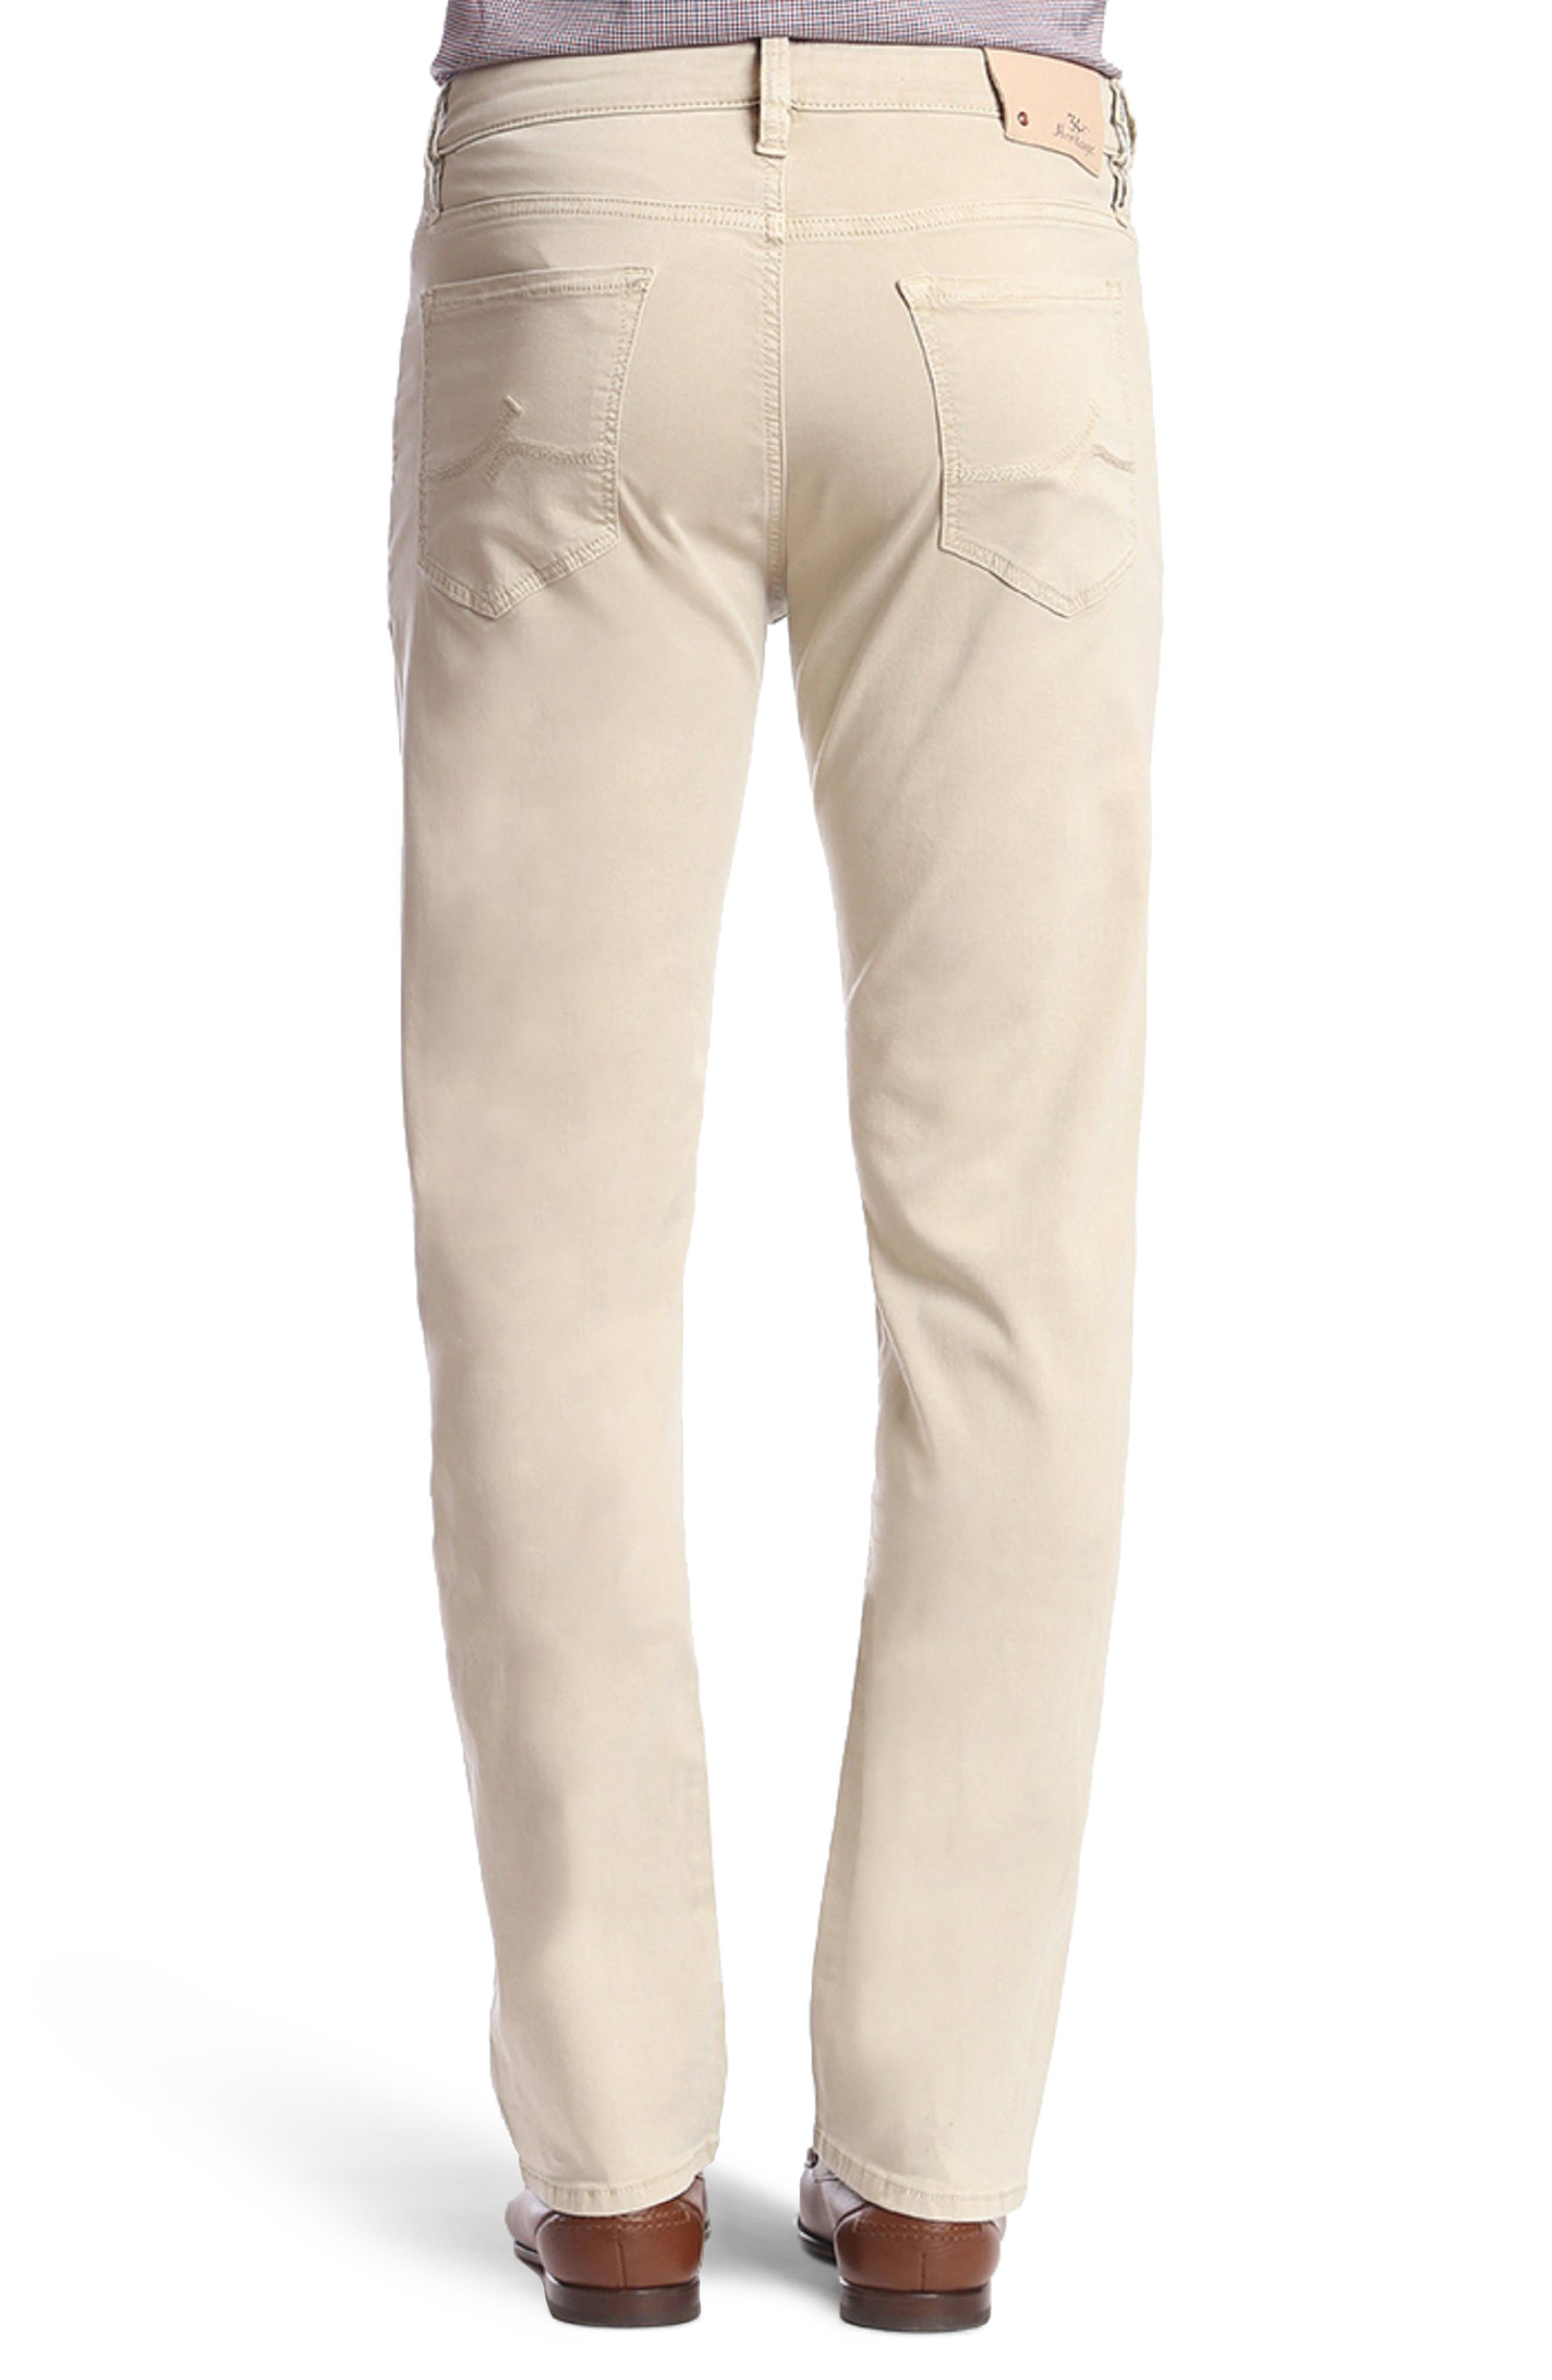 Charisma Relaxed Fit Jeans,                             Alternate thumbnail 2, color,                             250